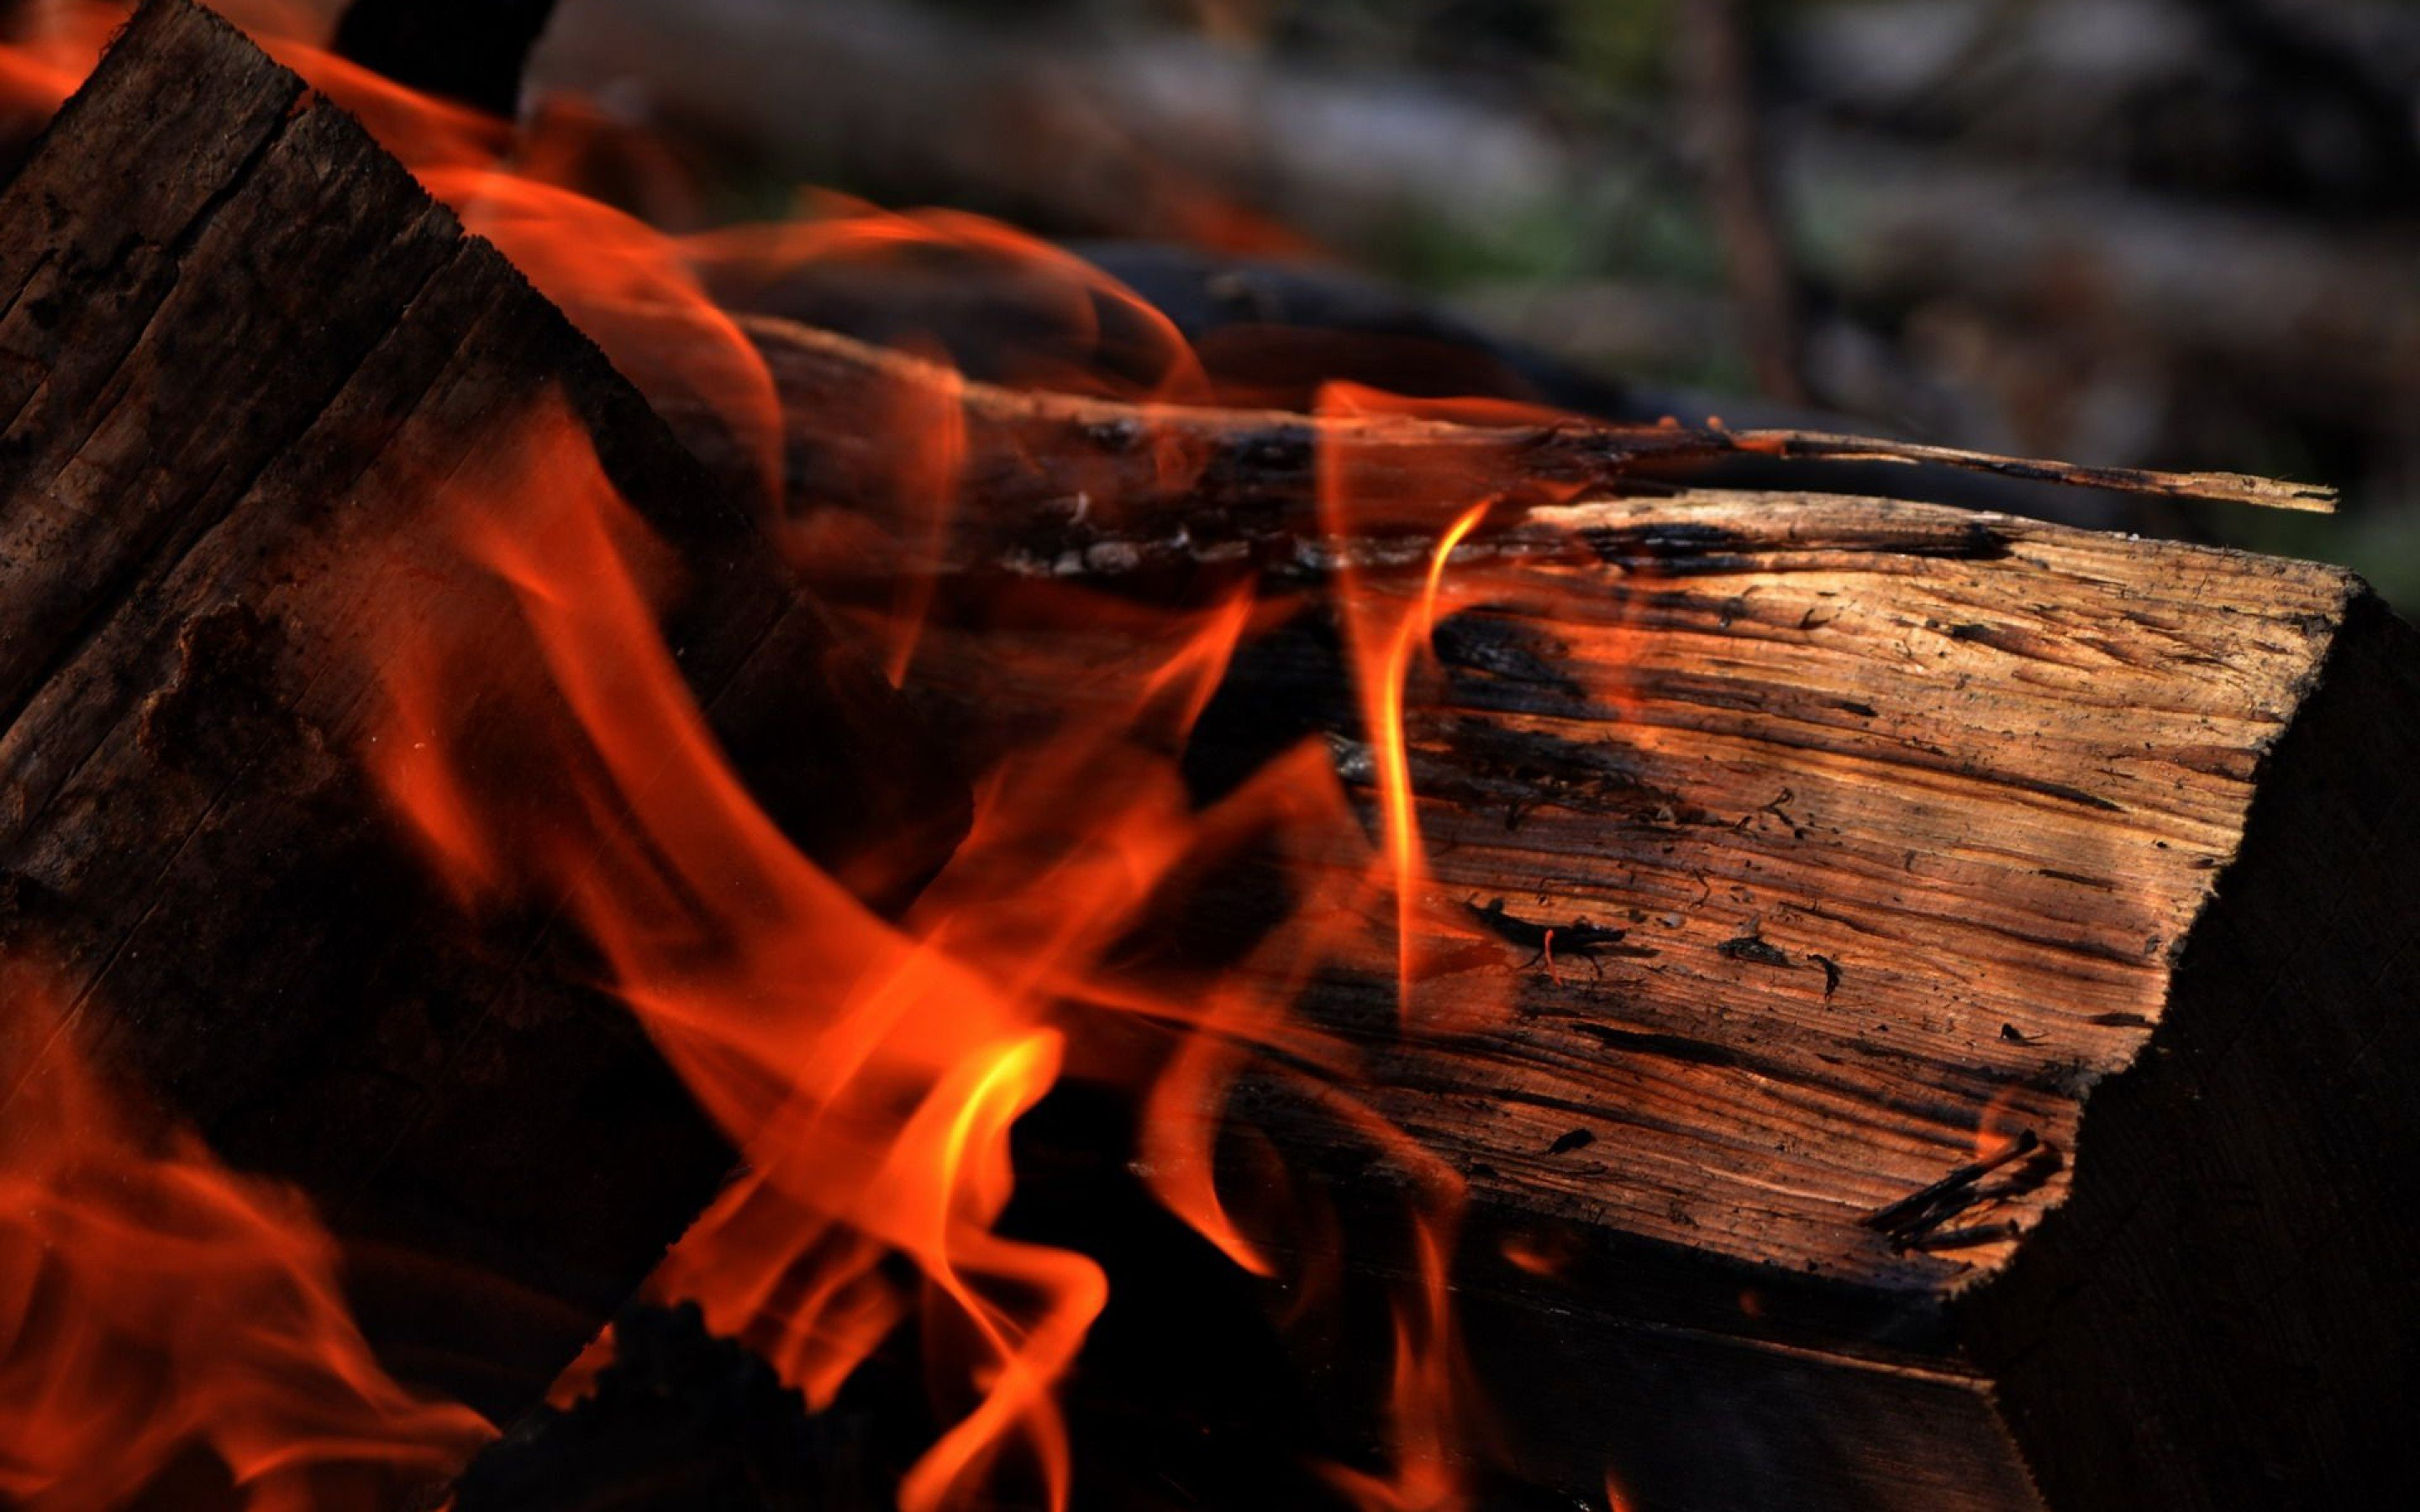 backgrounds-best-red-wood-fire-wallpaper-wallpapers